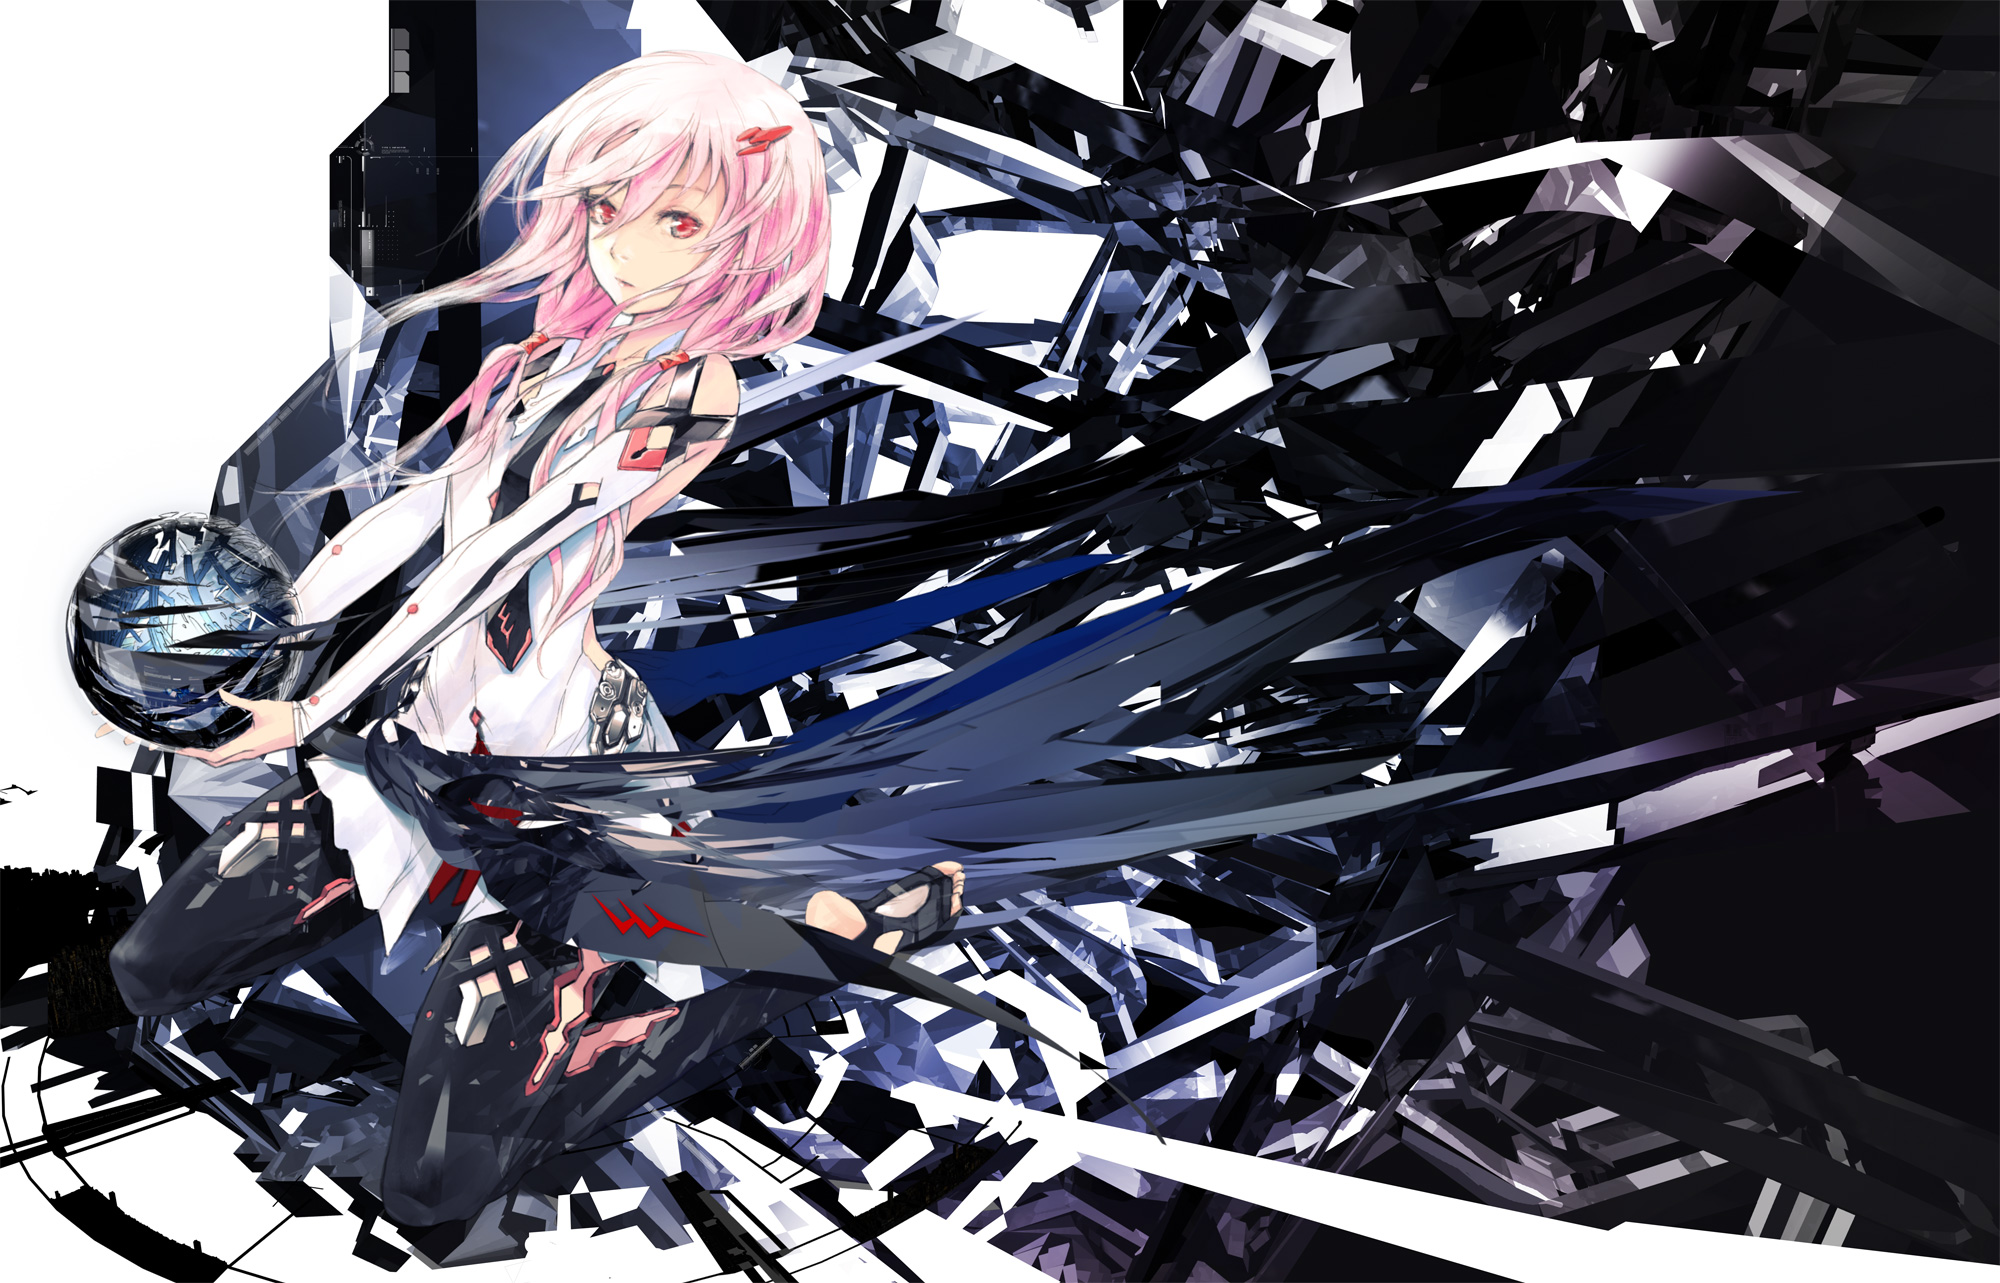 300 Guilty Crown HD Wallpapers Background Images 2000x1283